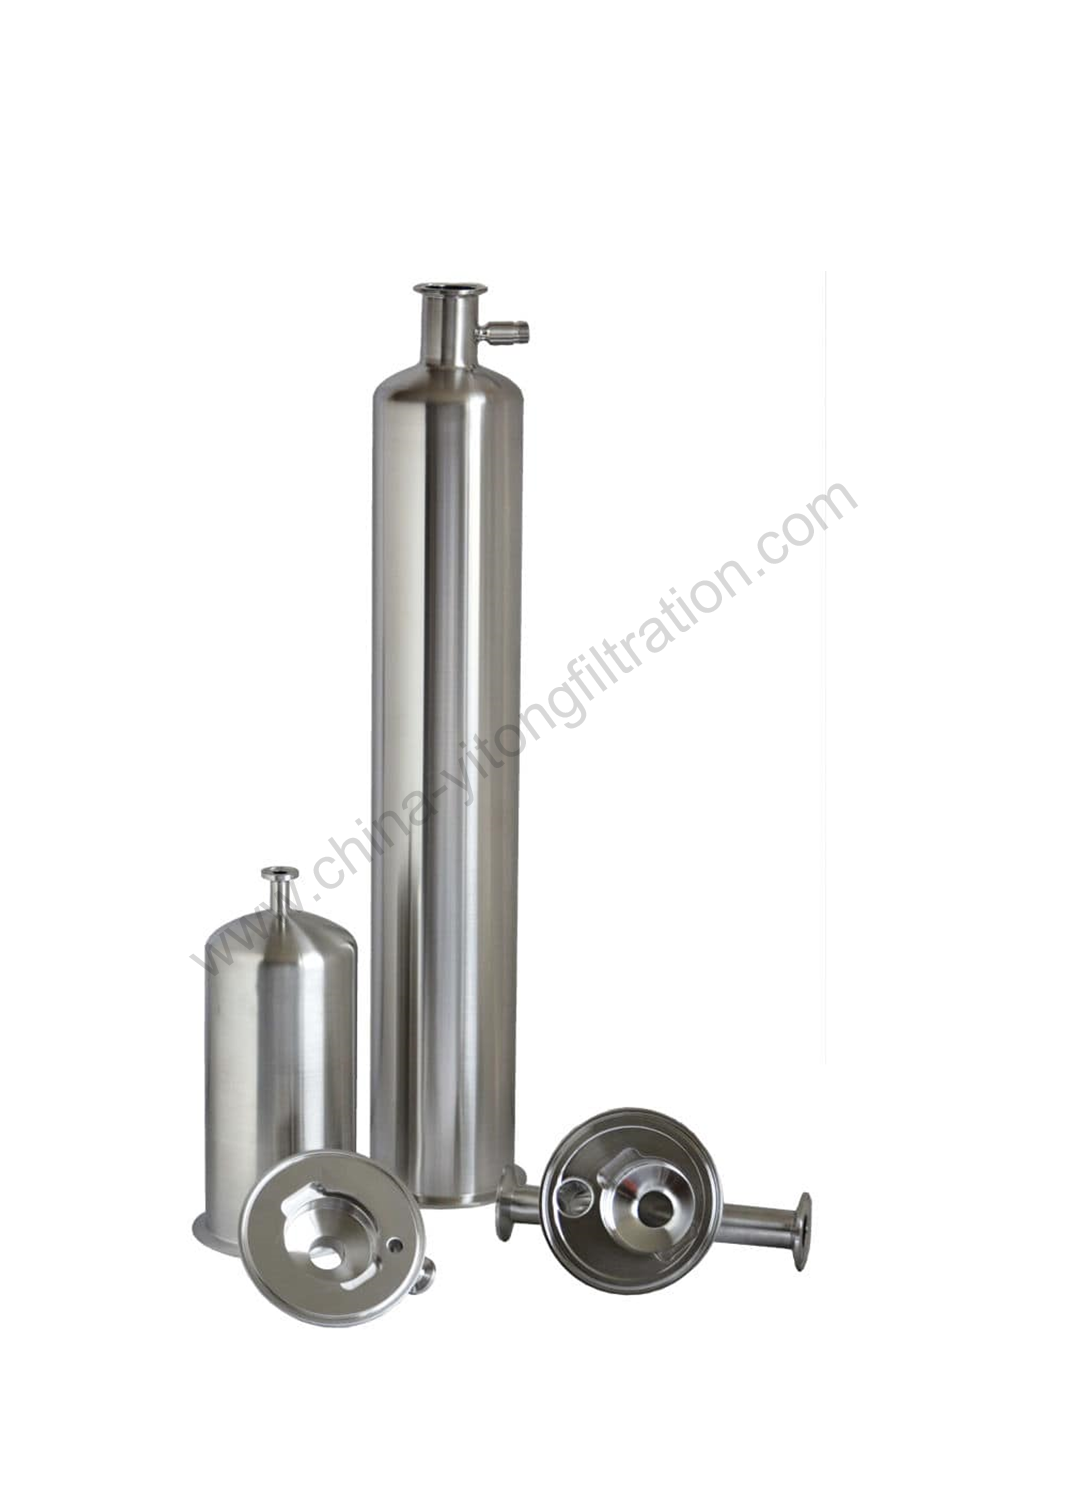 Industrial Single Cartridge Filter Housing